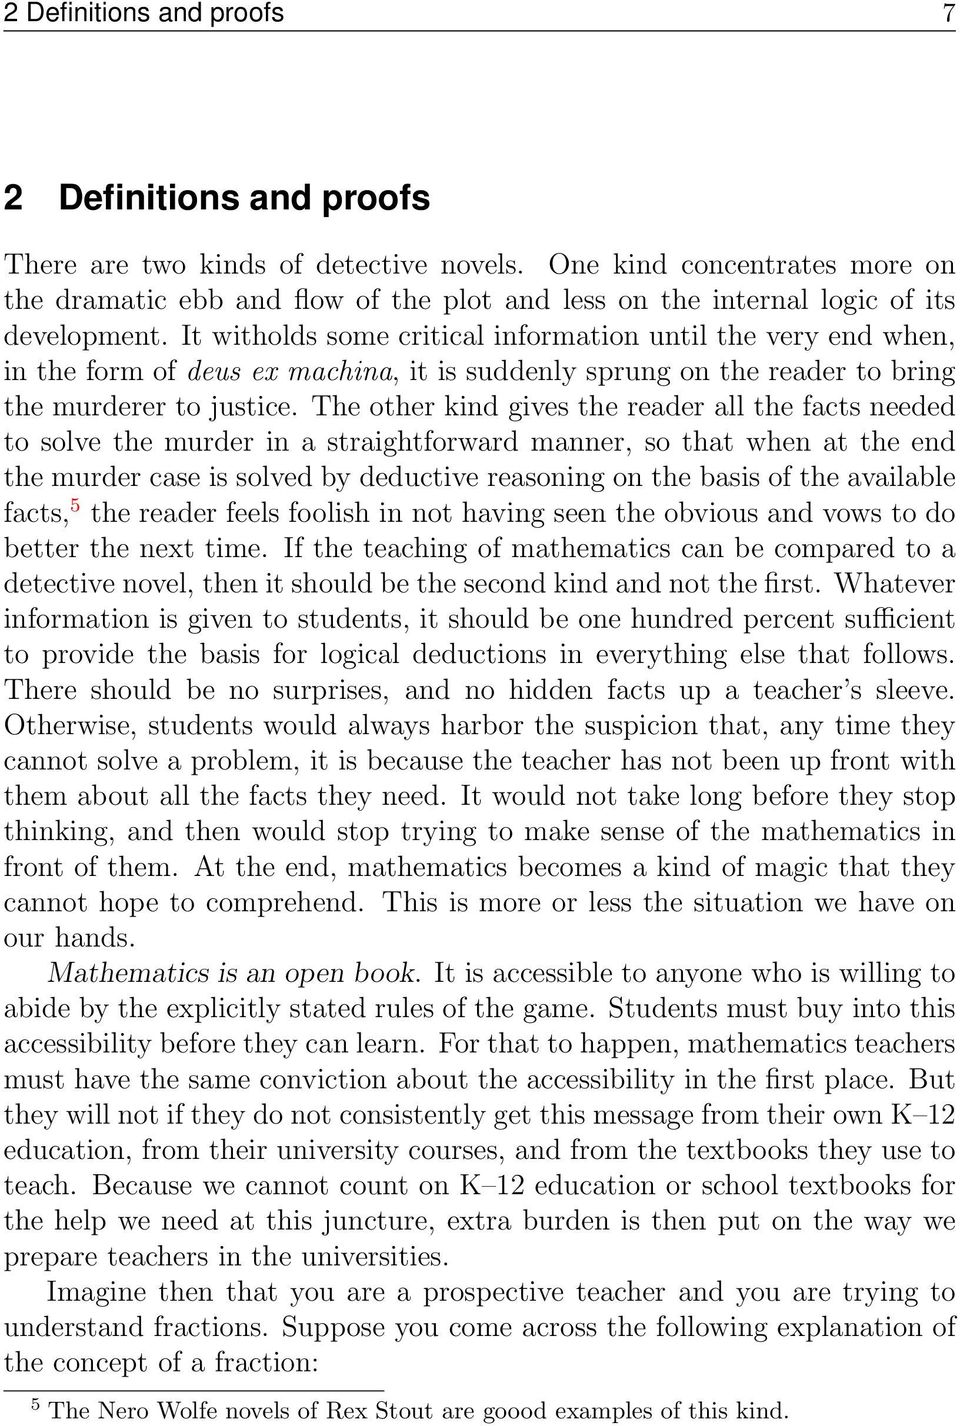 what is so difficult about the preparation of mathematics teachers